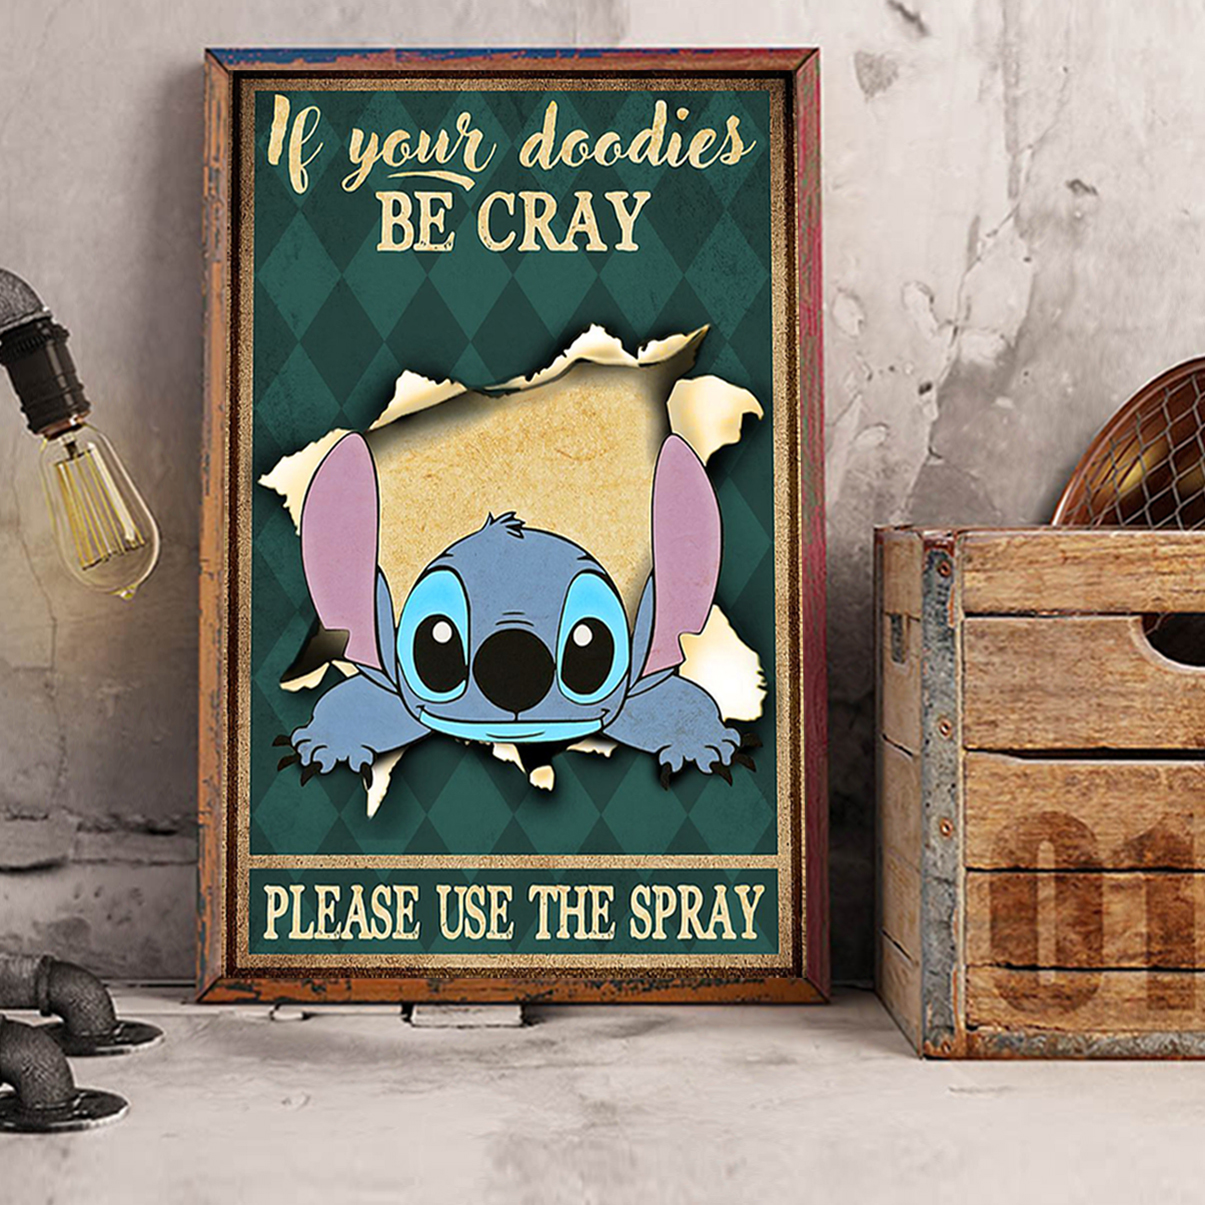 Stitch if your doodies be cray please use the spray poster A2